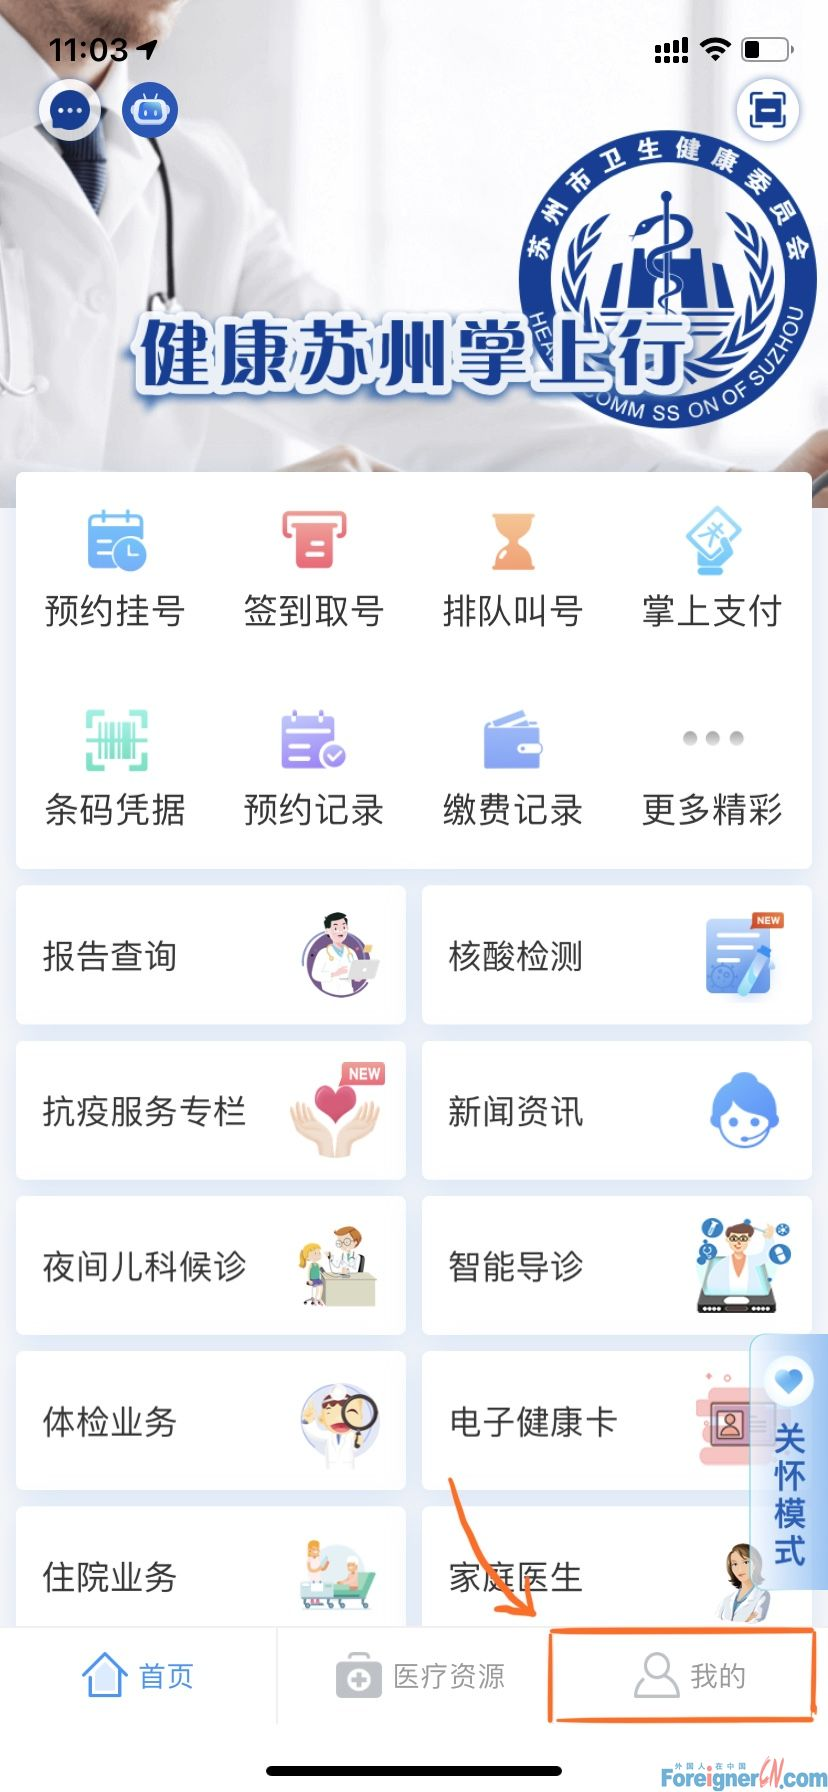 Expats can make an online hospital appointment in Suzhou